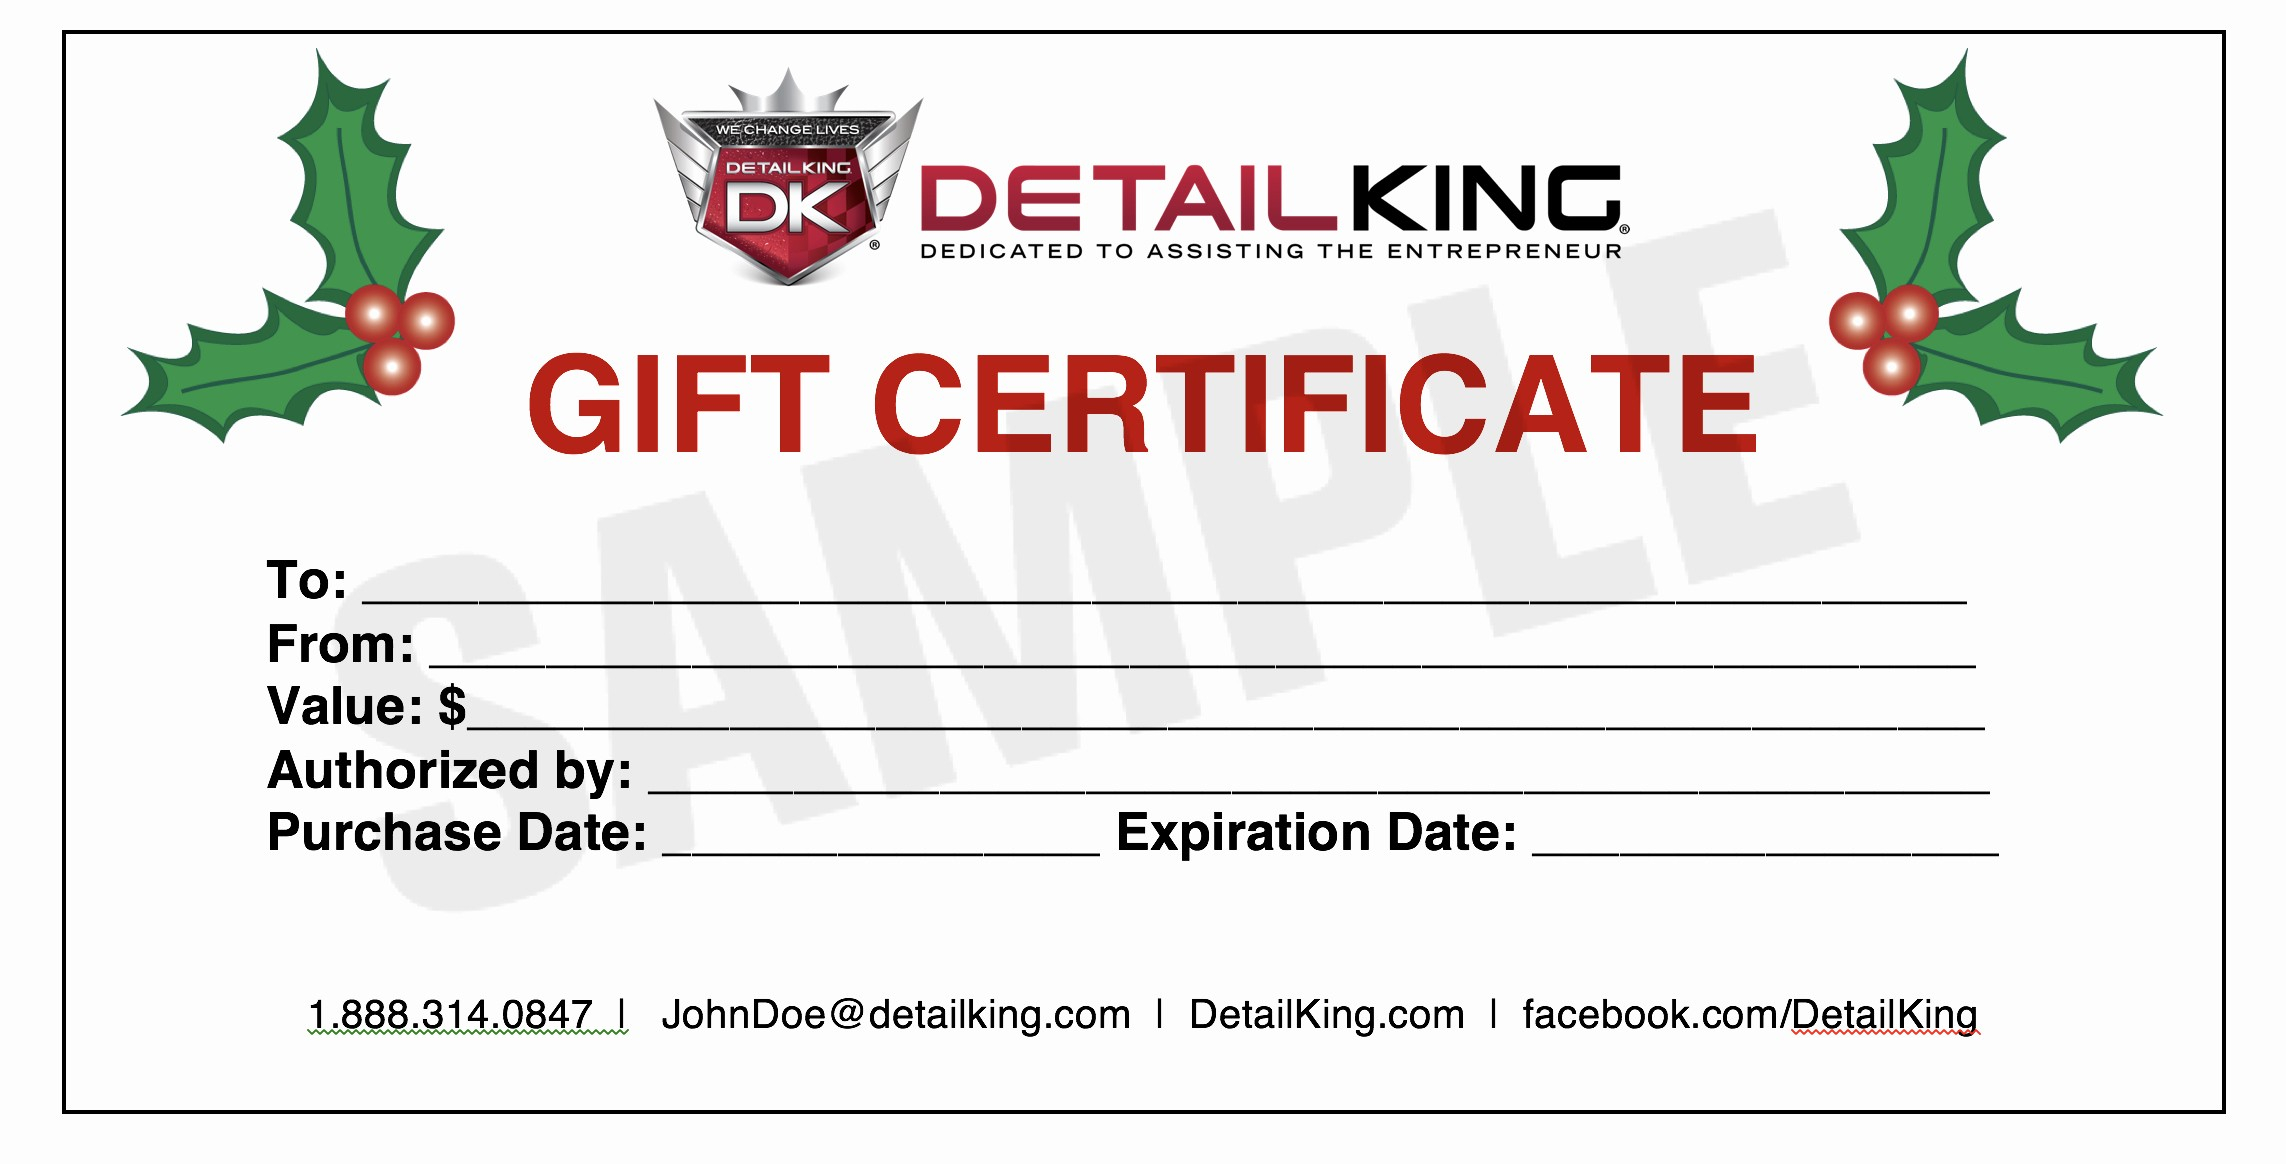 16 Personalized Auto Detailing Gift Certificate Templates Intended For Automotive Gift Certificate Template